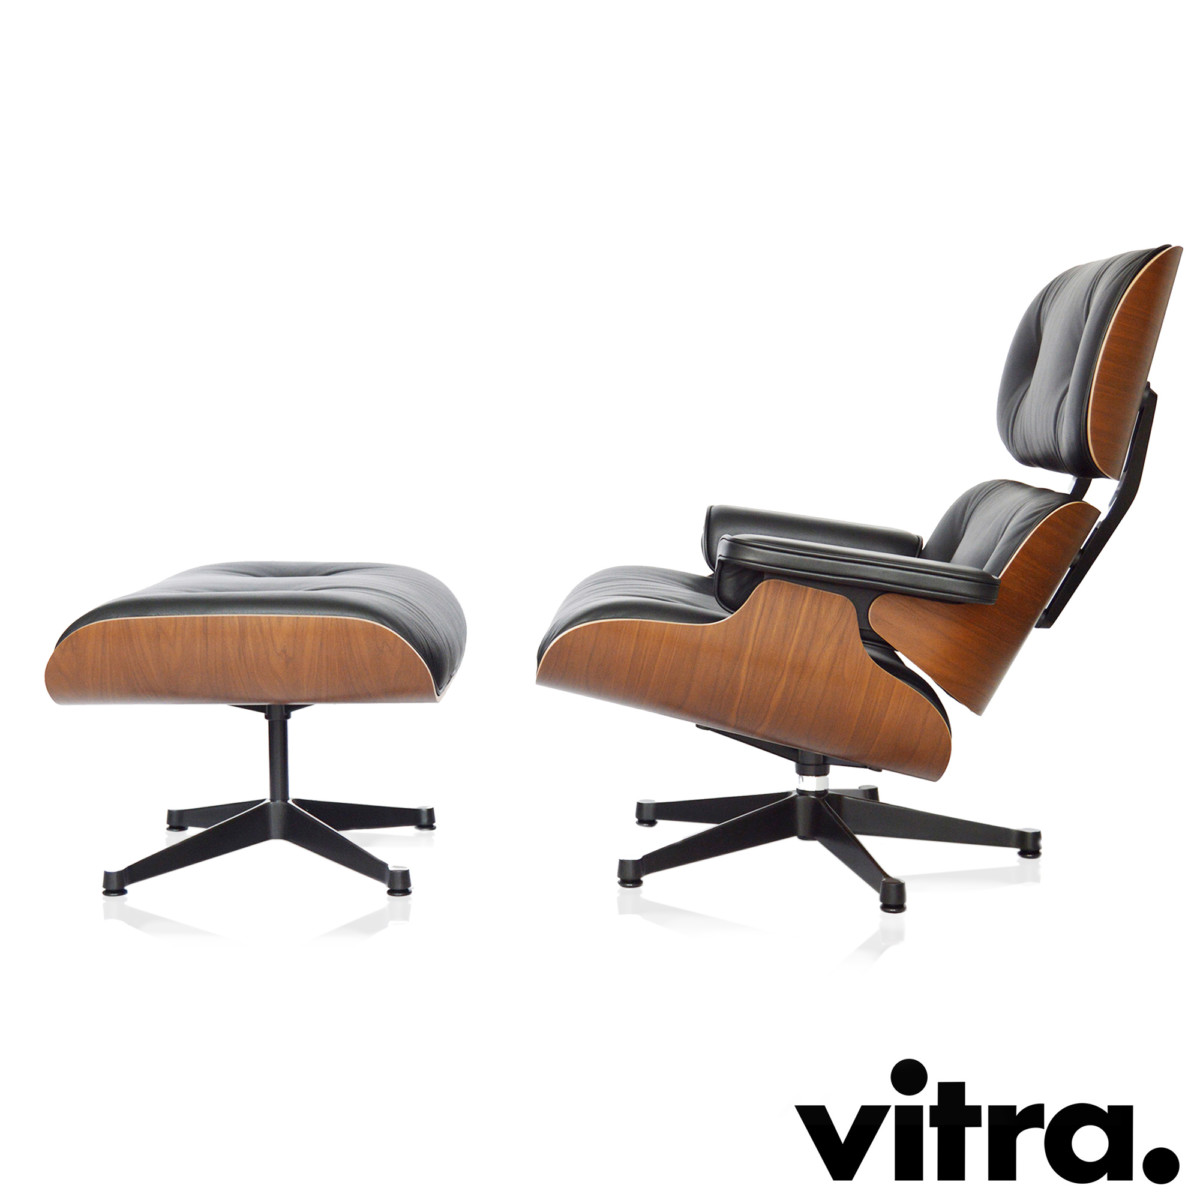 Gentil Vitra Eames Lounge Chair ...